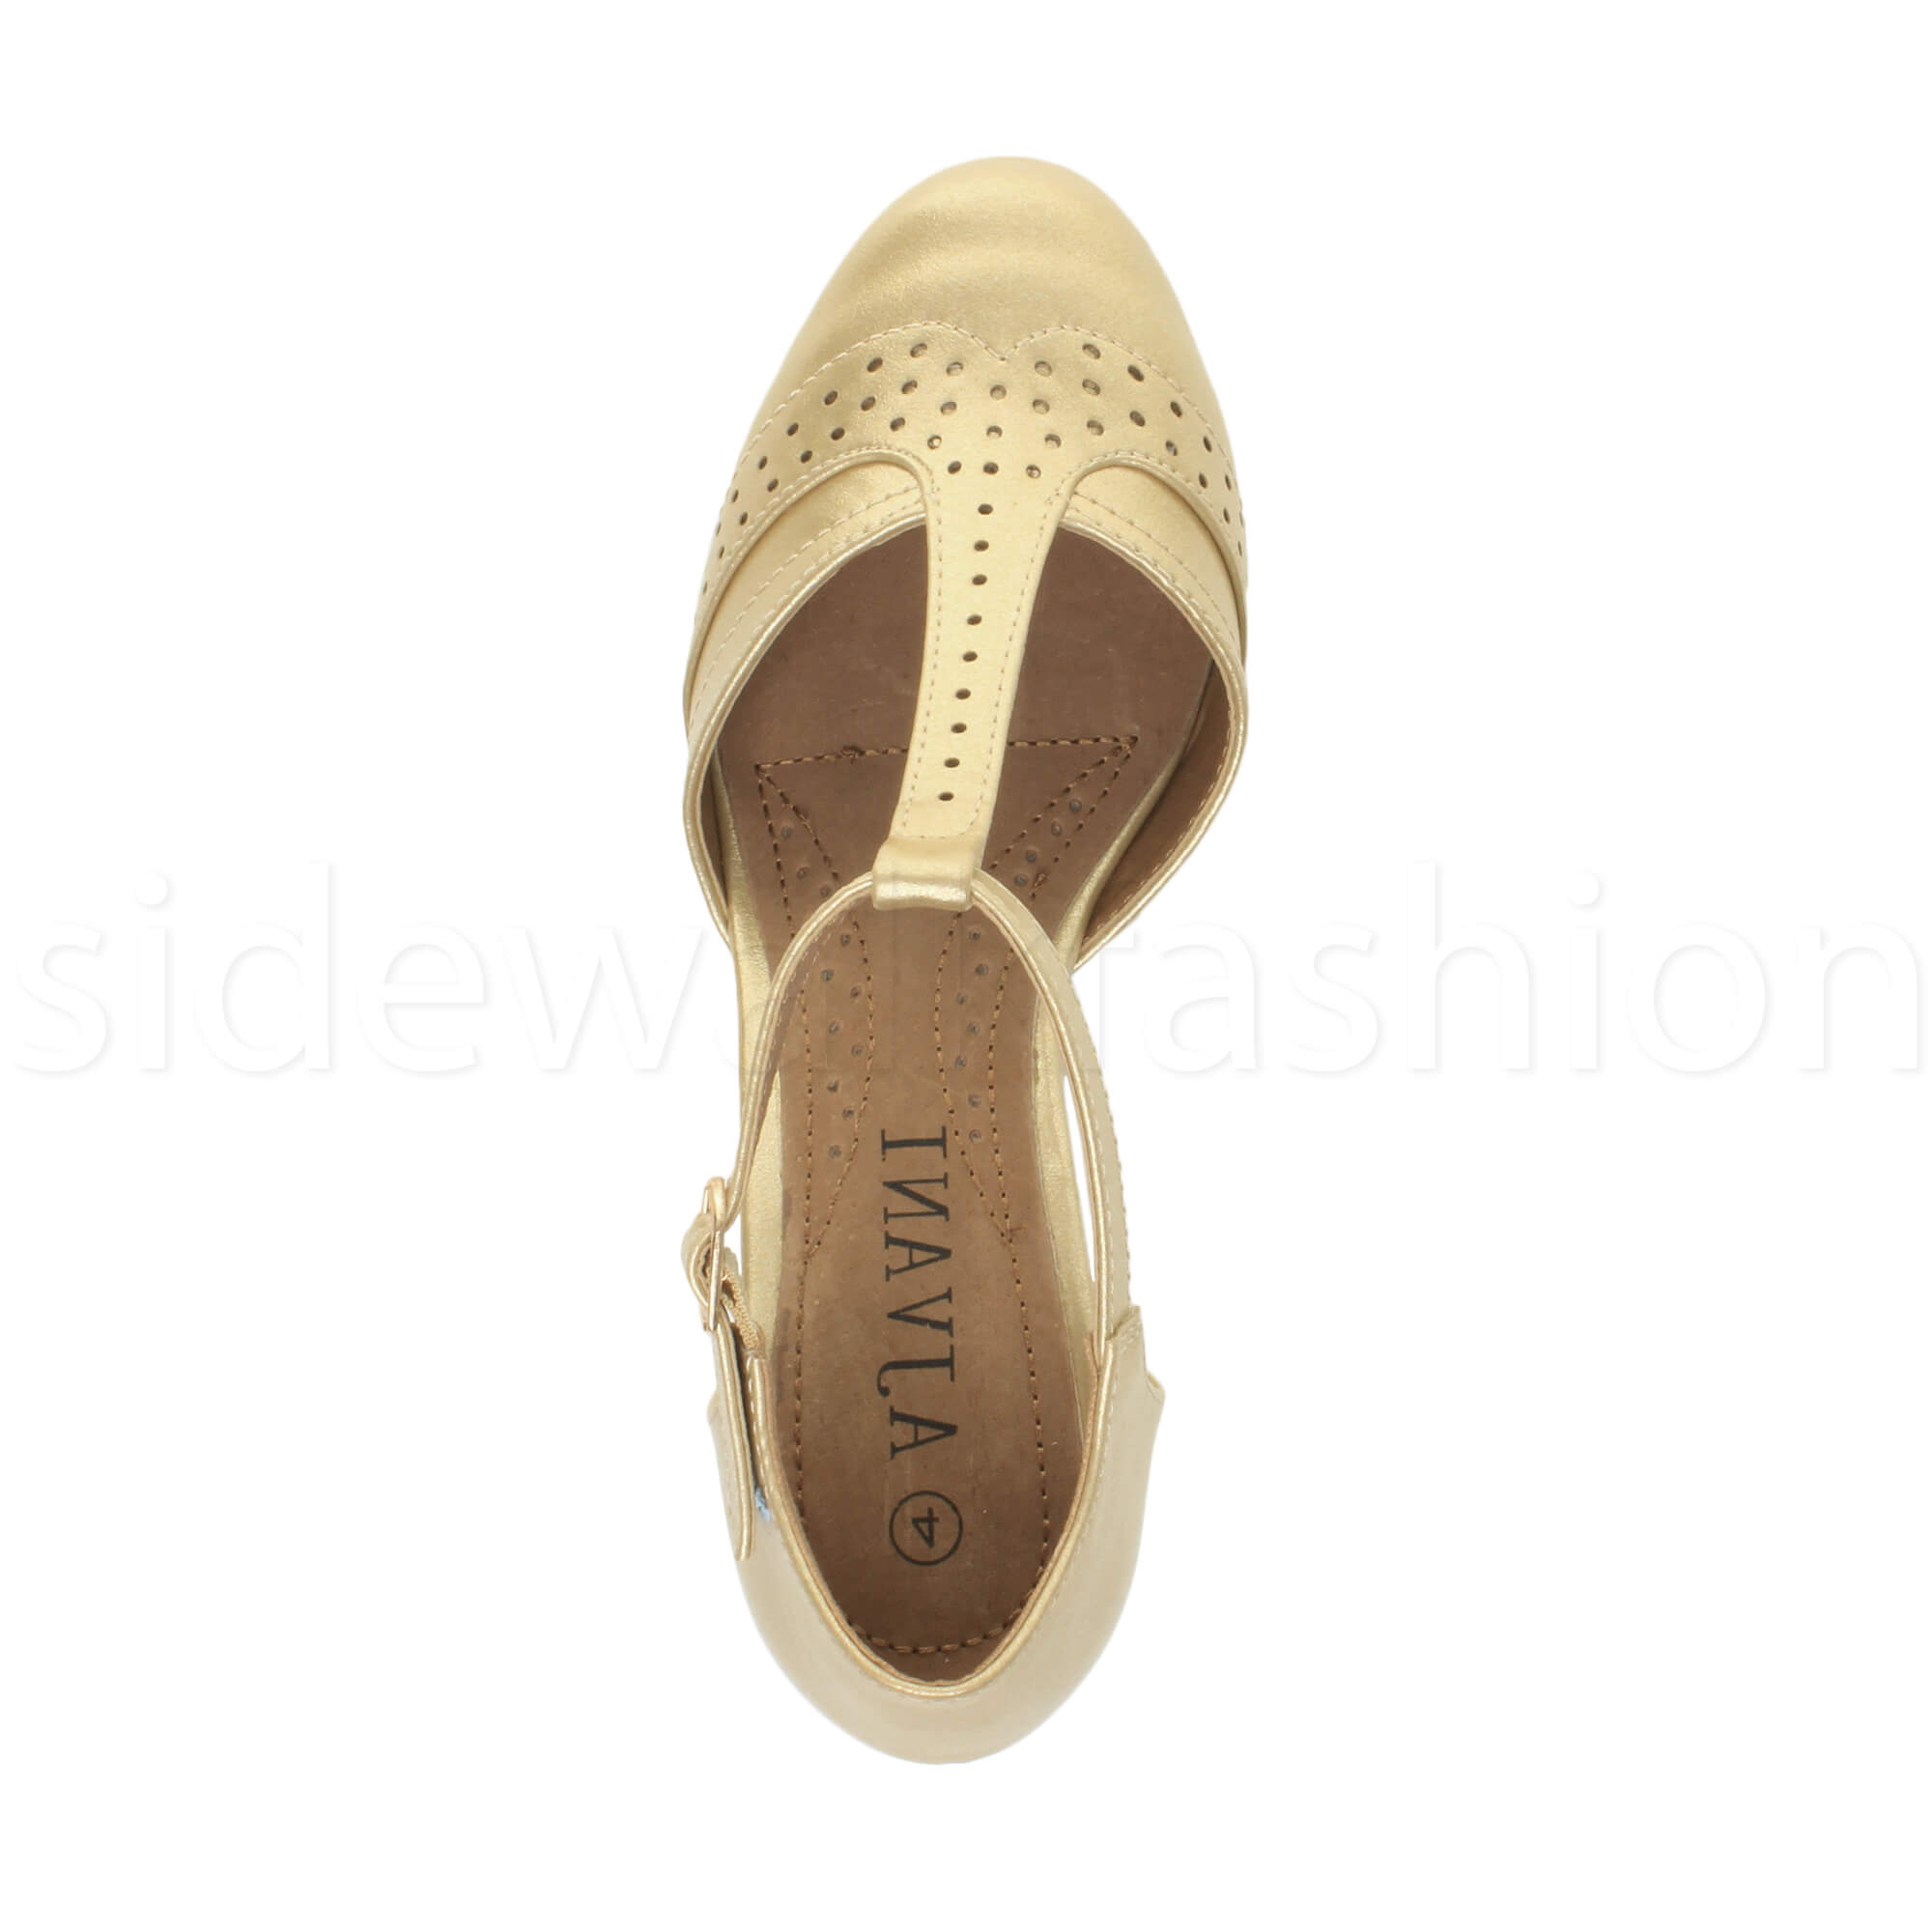 Womens-ladies-block-low-mid-heel-smart-work-Mary-Jane-T-bar-brogue-court-shoes thumbnail 34